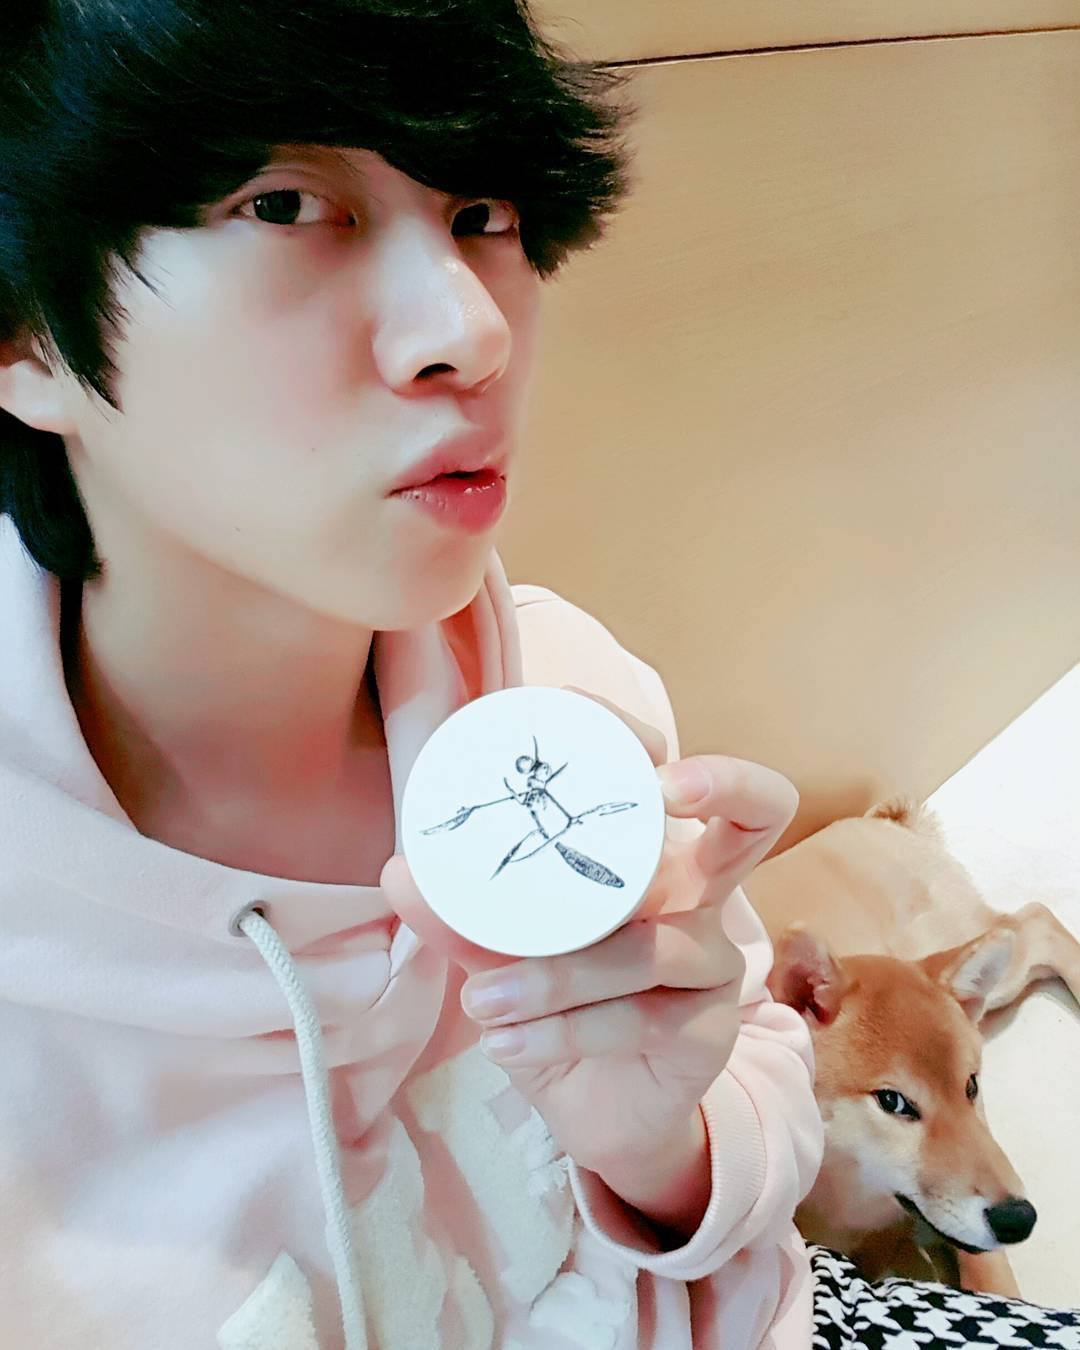 Heechuls Adorable Puppy Might Be The Most Stubborn Dog There Is